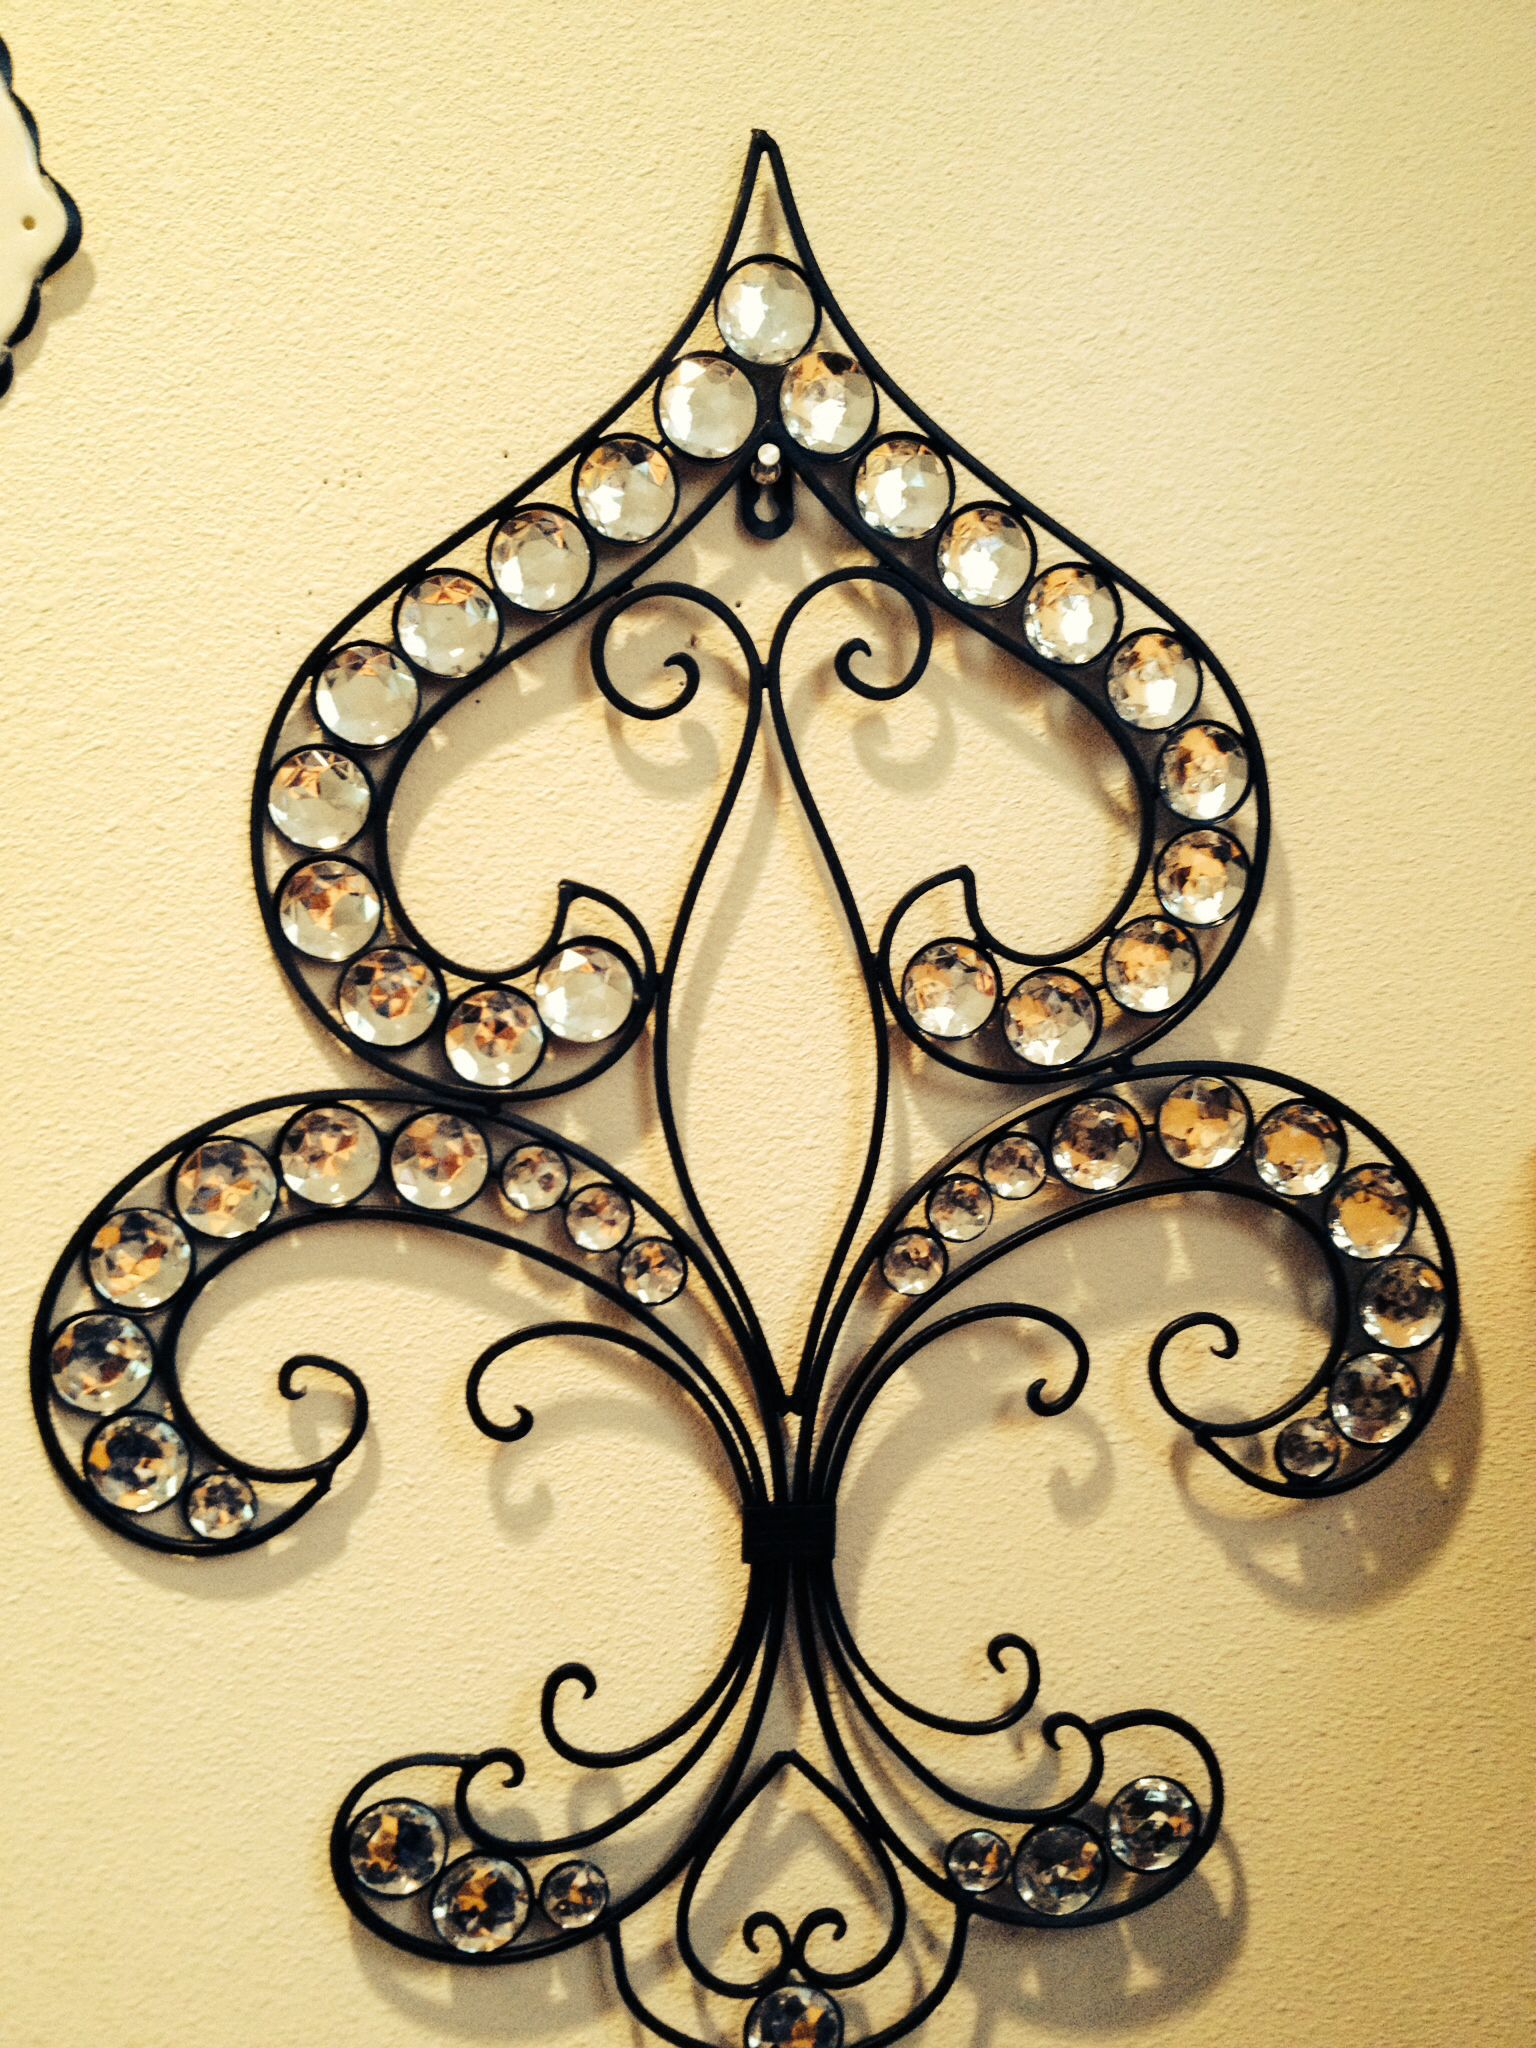 Fleur de lis wall decor Art deco Black & white Sophisticated | Decor ...